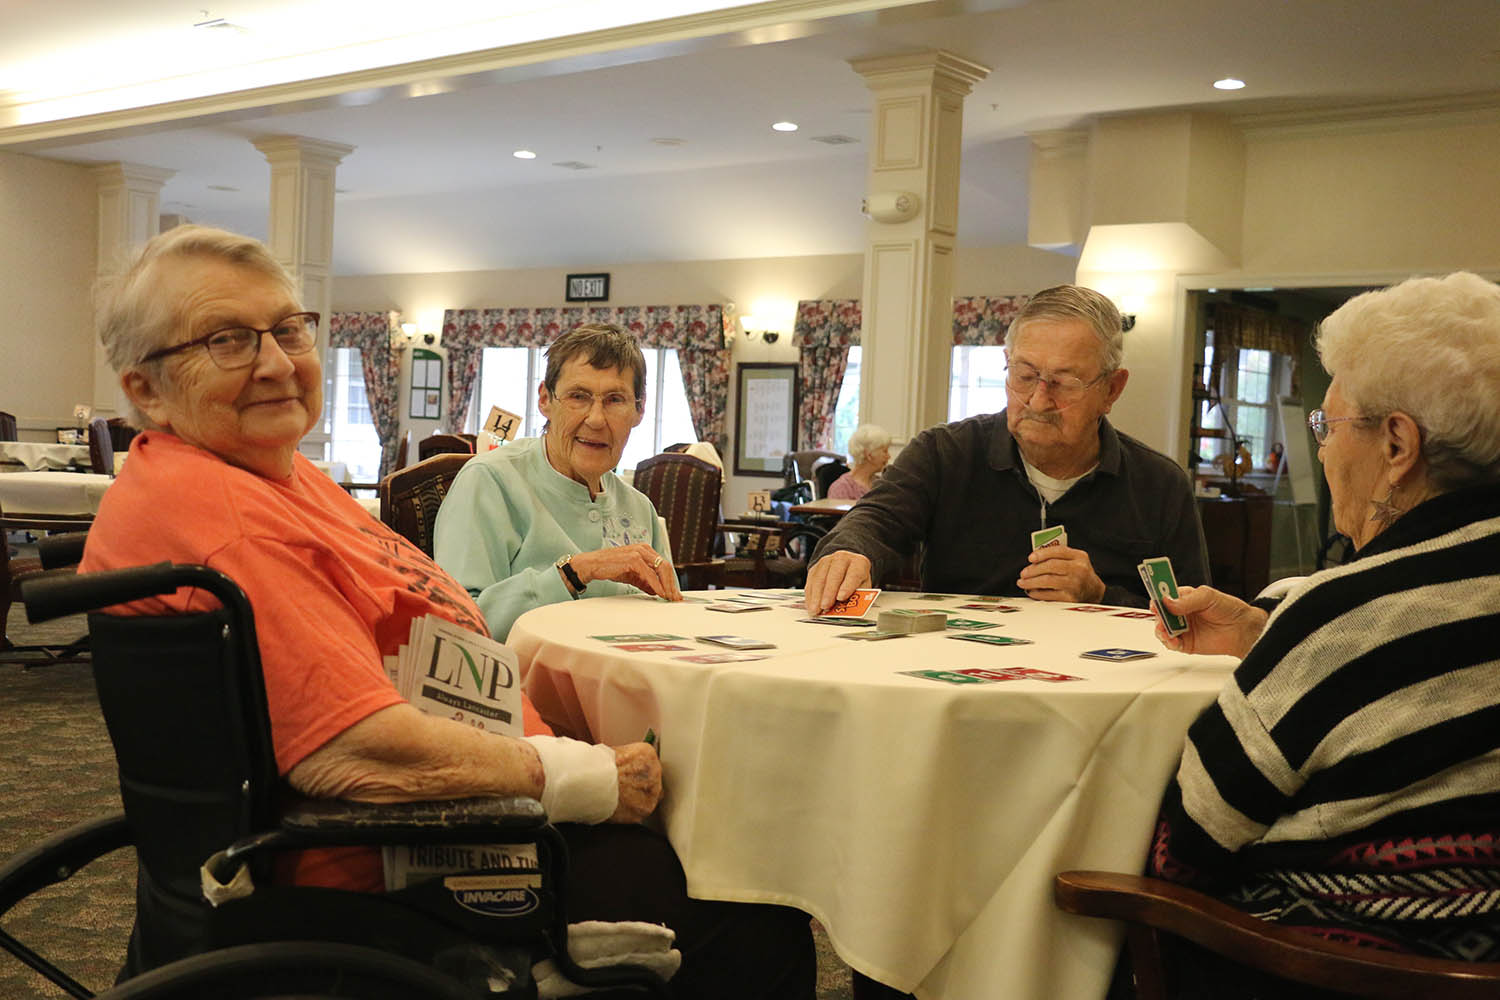 Seniors in a Senior Living Community Cafe